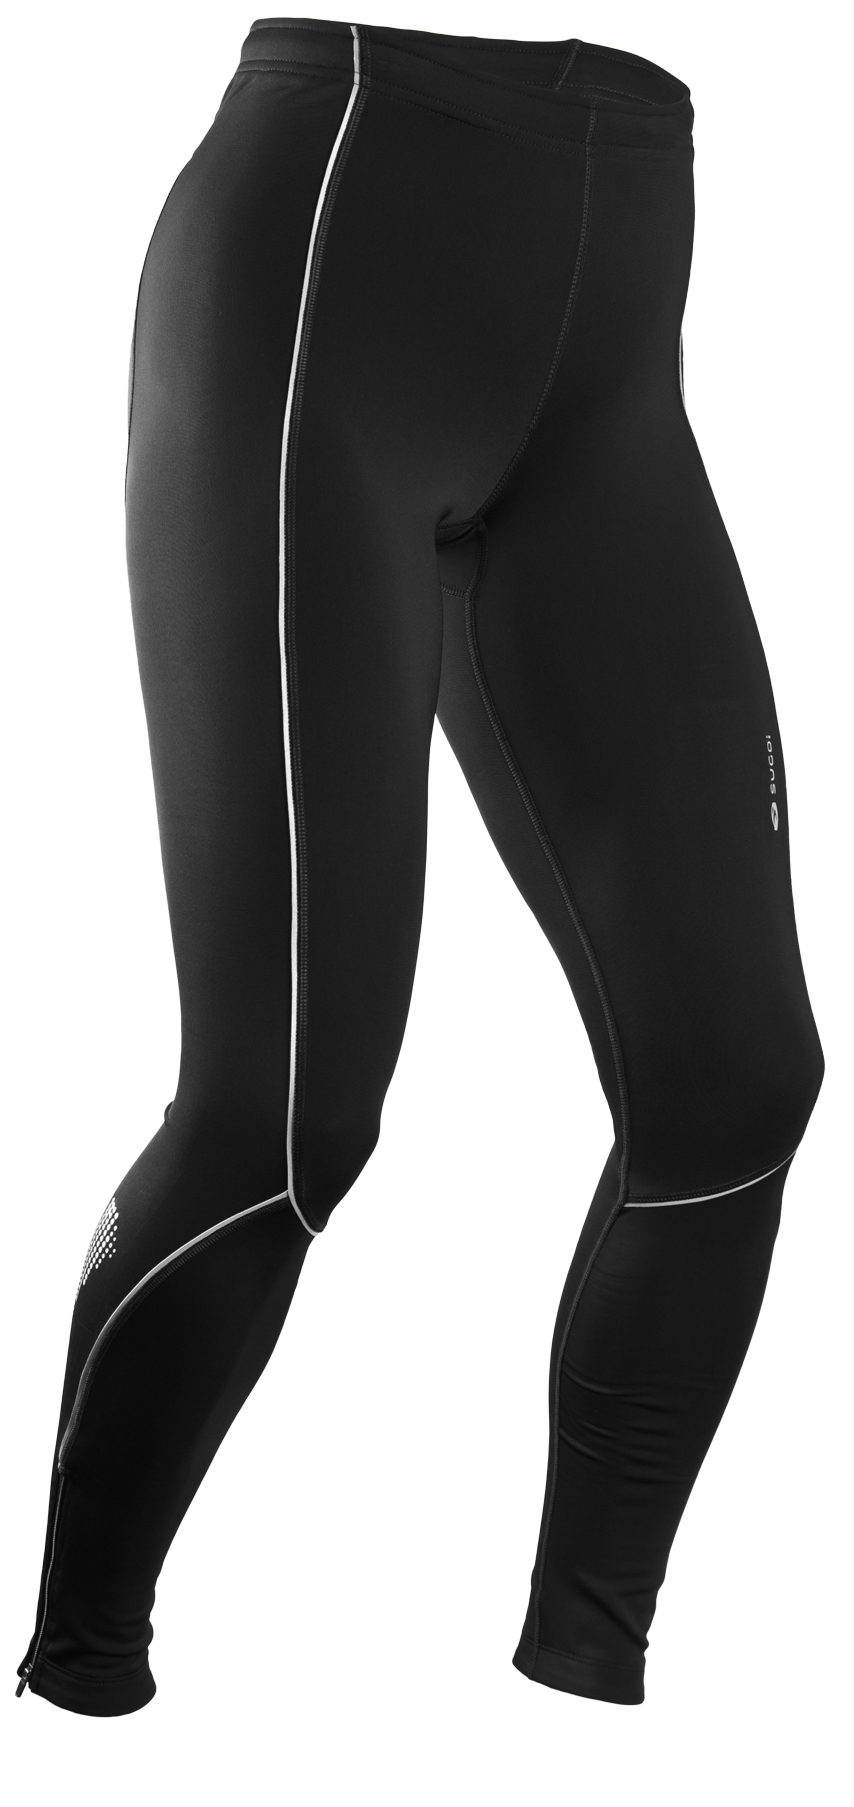 Рейтузы Sugoi MidZERO Zap TIGHT, женские, black (черные), S фото